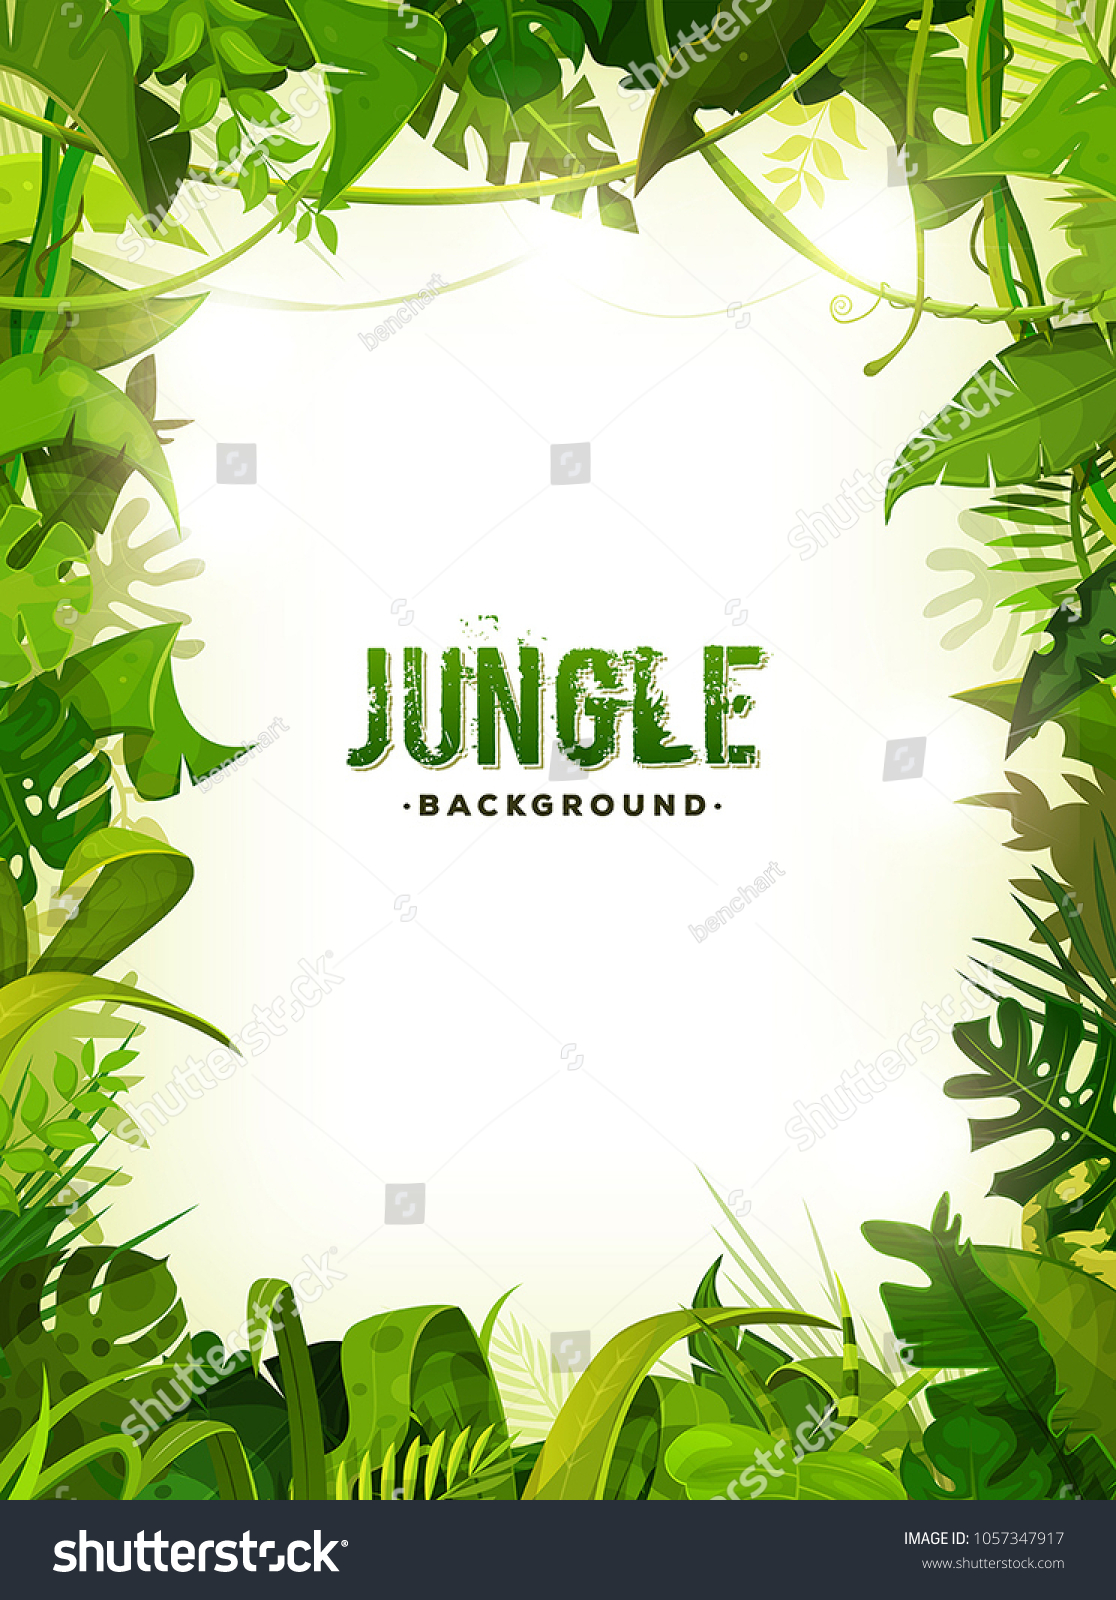 Jungle Tropical Leaves Background Illustration Jungle Stock Vector Royalty Free 1057347917 Download 26,559 tropical free vectors. https www shutterstock com image vector jungle tropical leaves background illustration landscape 1057347917